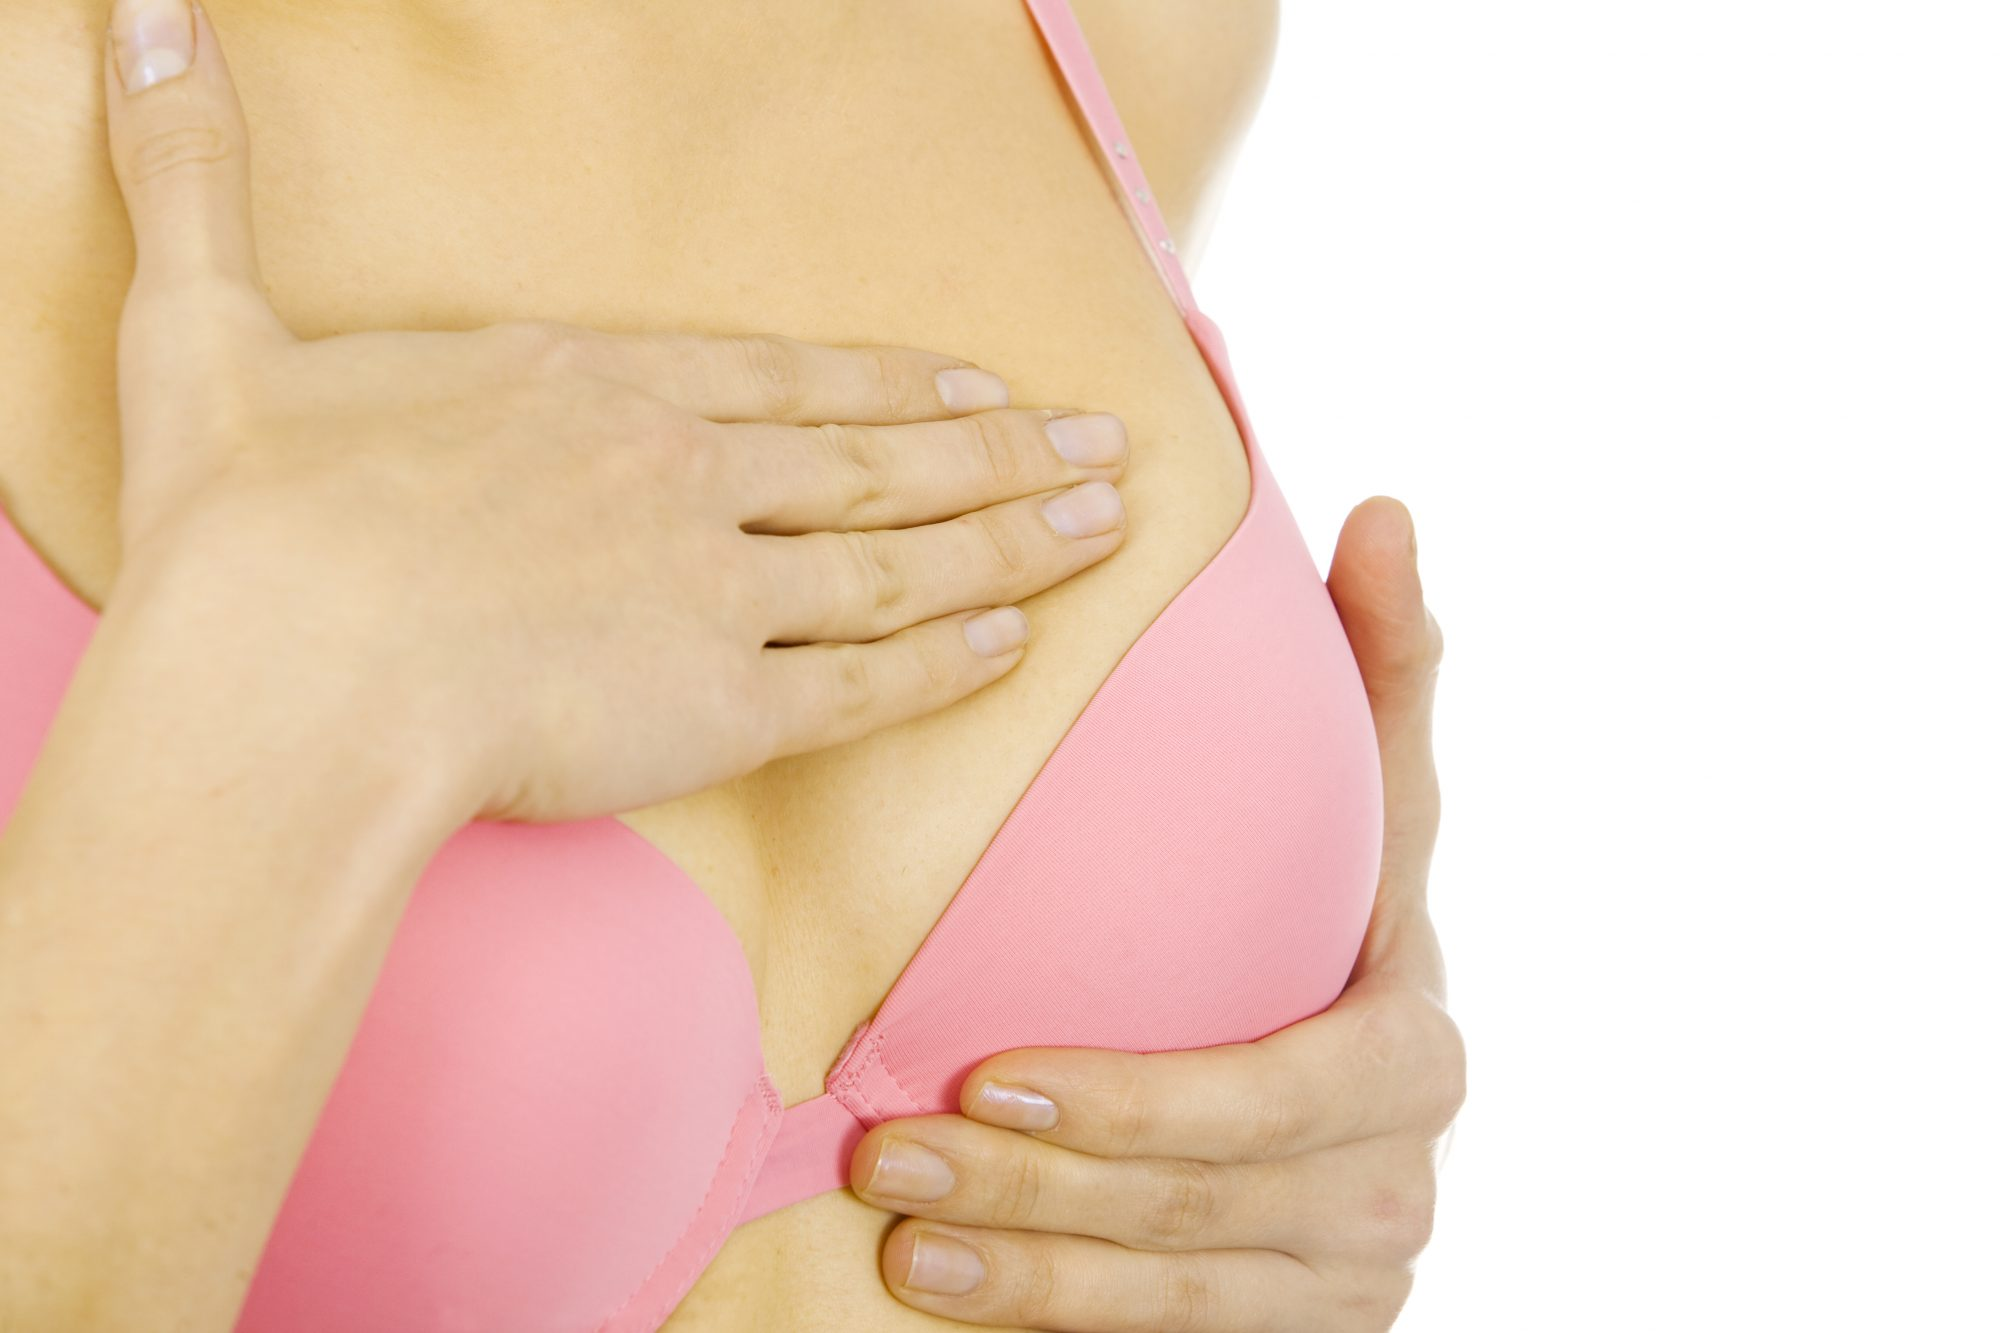 12 Health Conditions That Can Affect Your Breasts